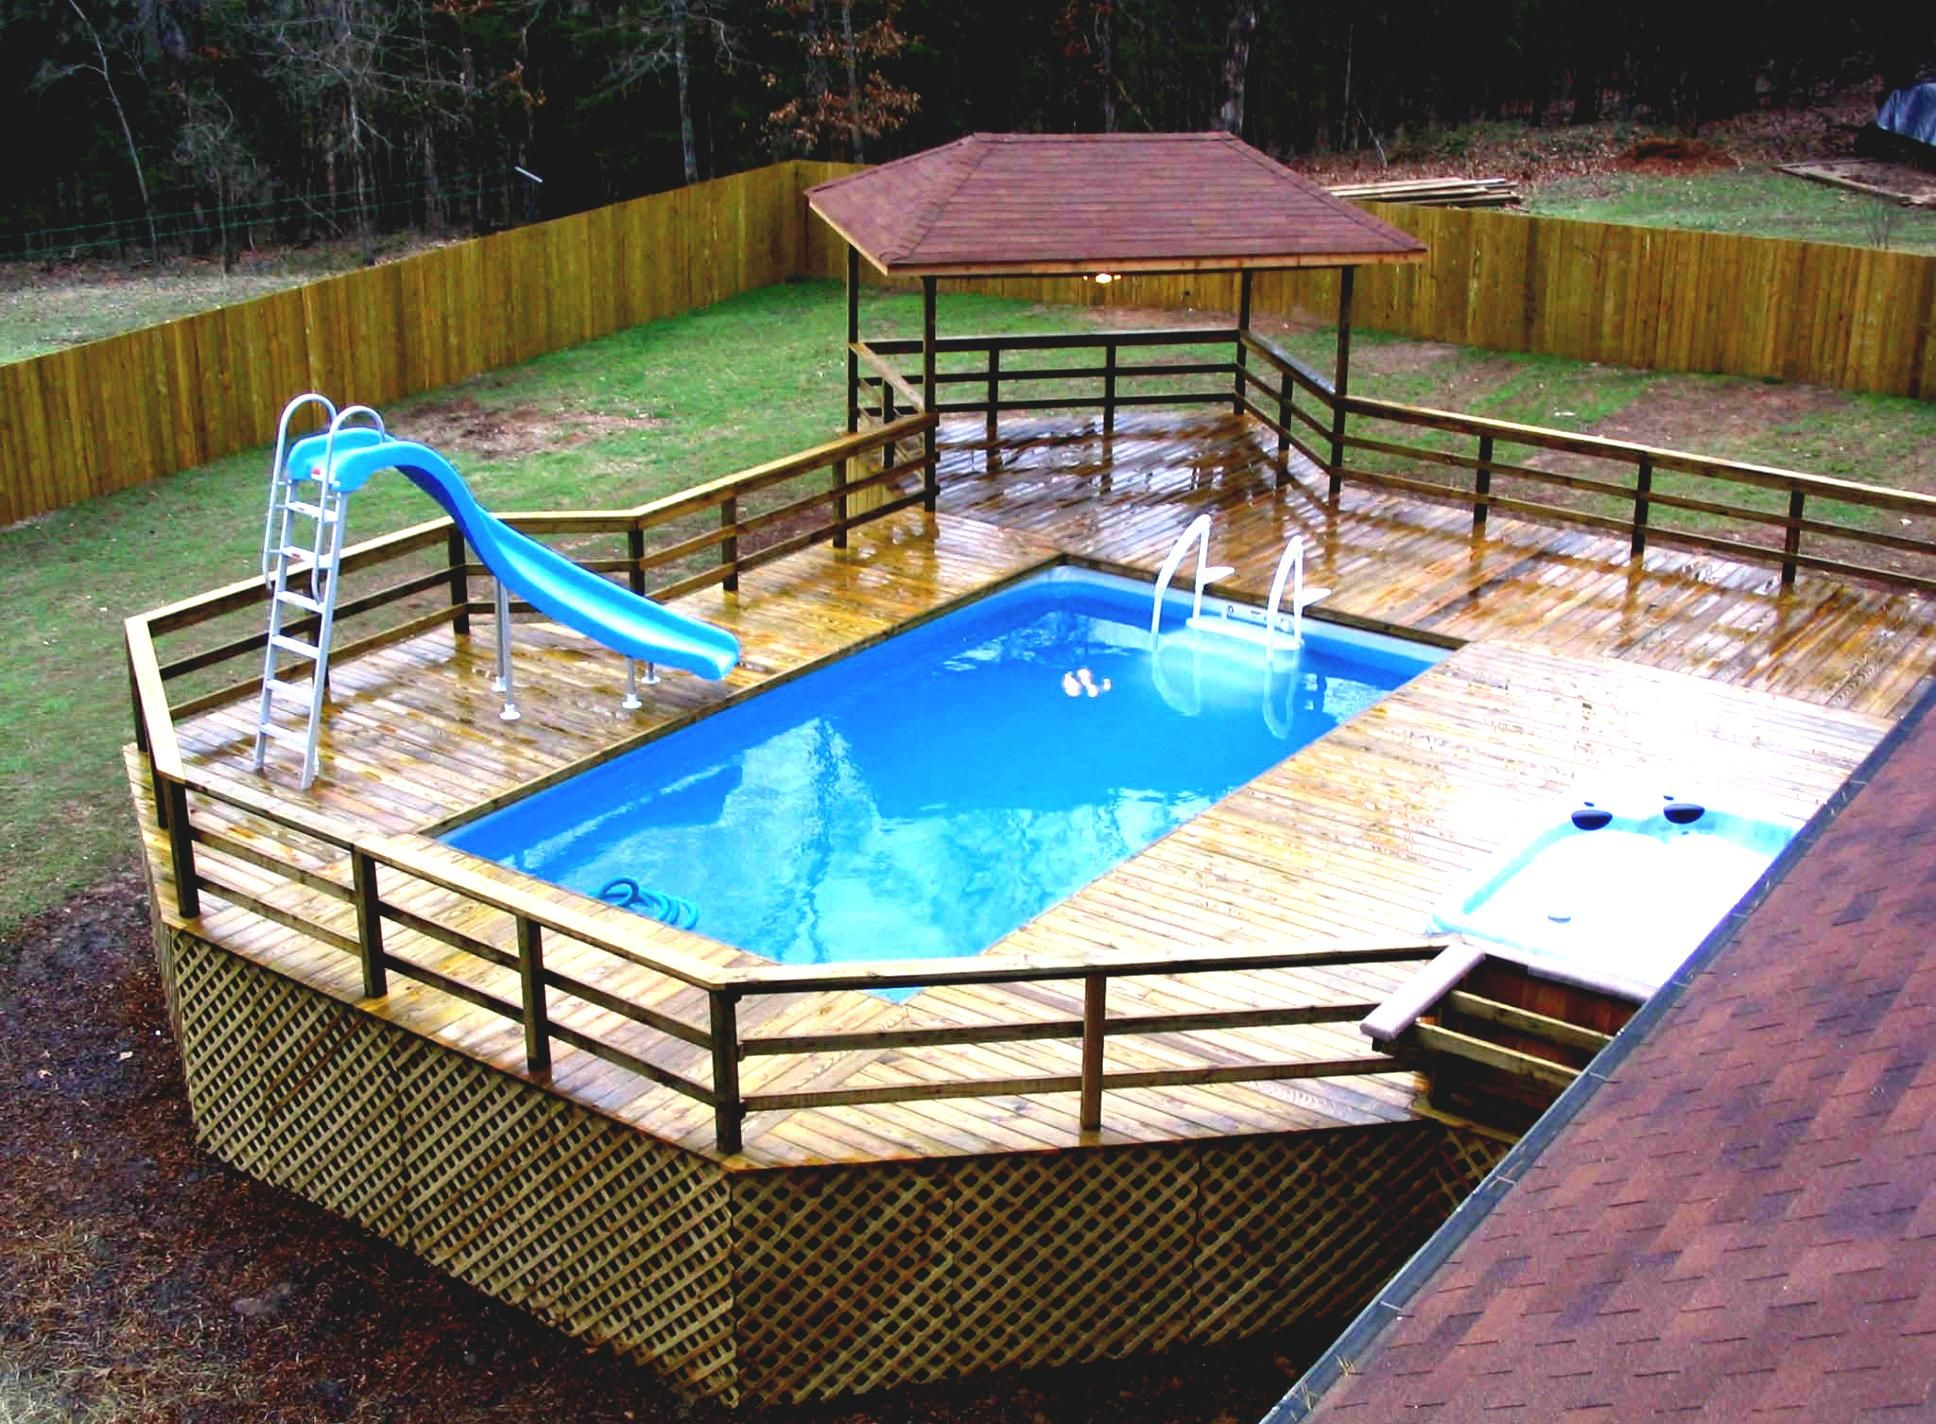 Intex above ground pool landscaping ideas pdf backyard for Poolside ideas